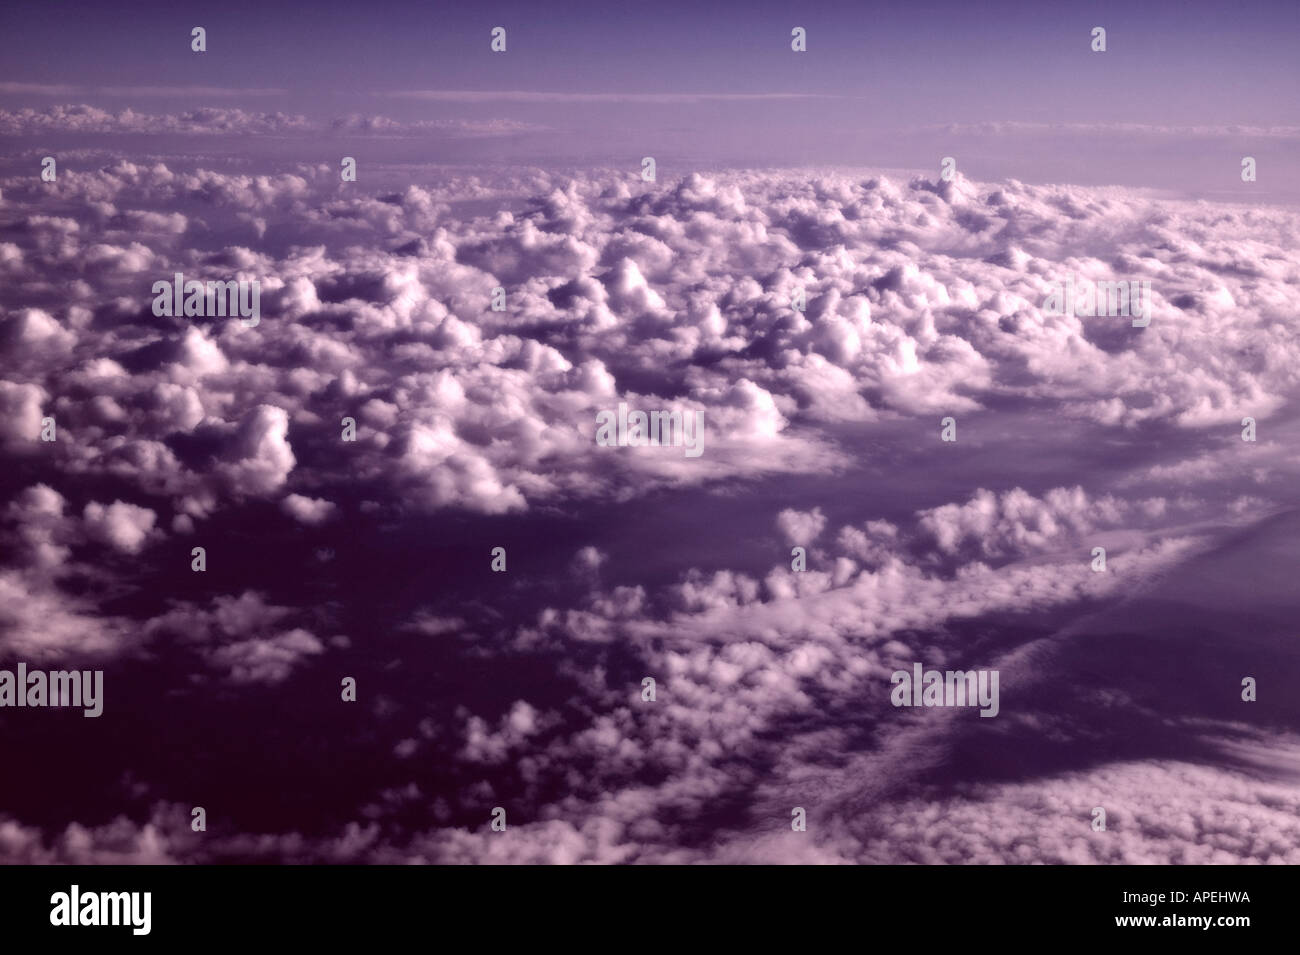 Looking Down on a Cloud Layer From a Jet - Stock Image